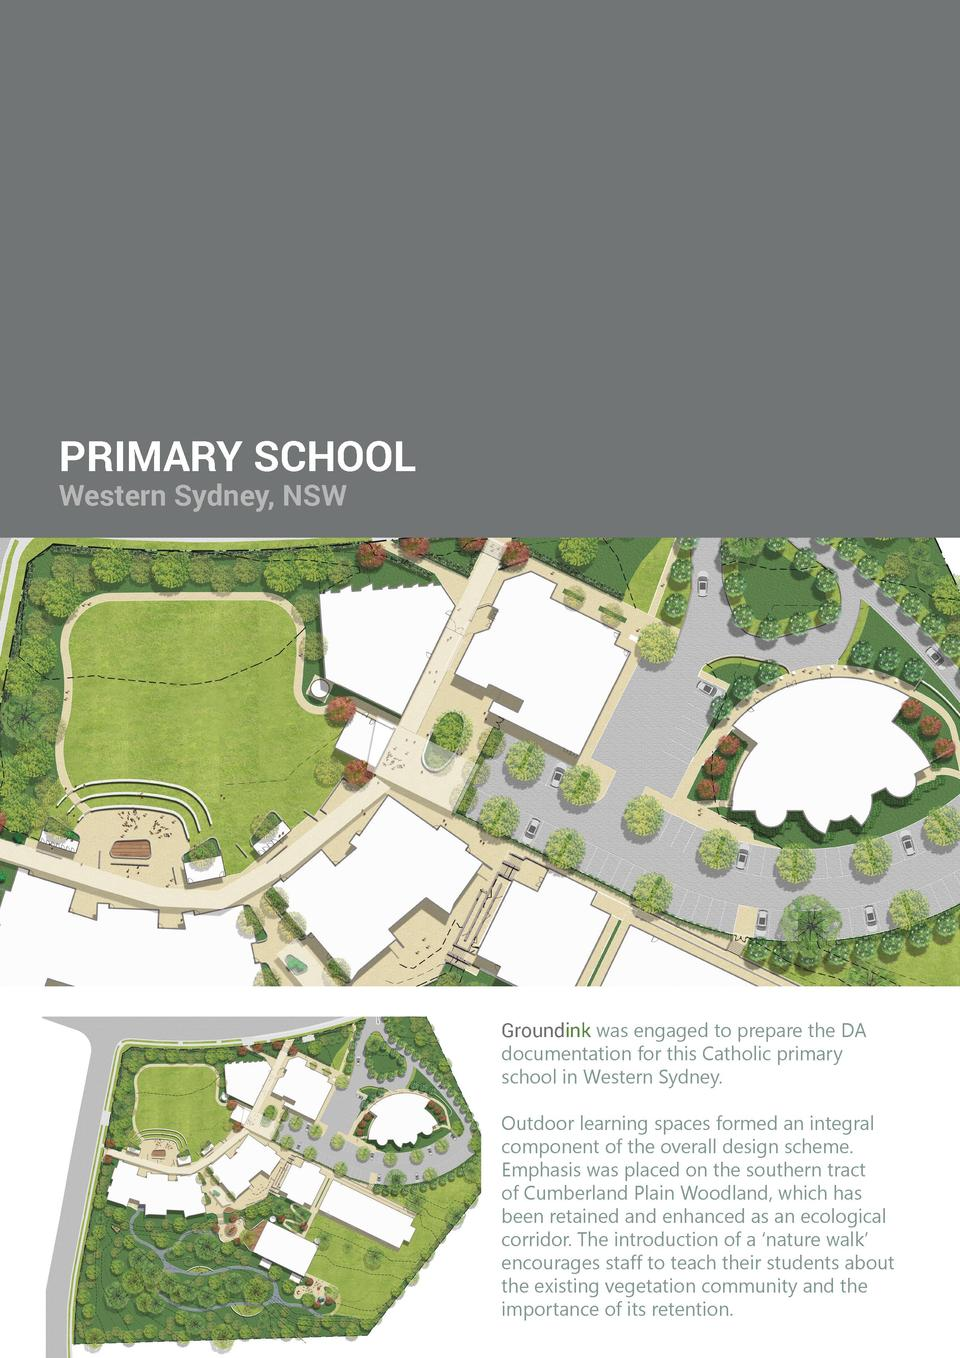 PRIMARY SCHOOL Western Sydney, NSW  Groundink was engaged to prepare the DA documentation for this Catholic primary school...